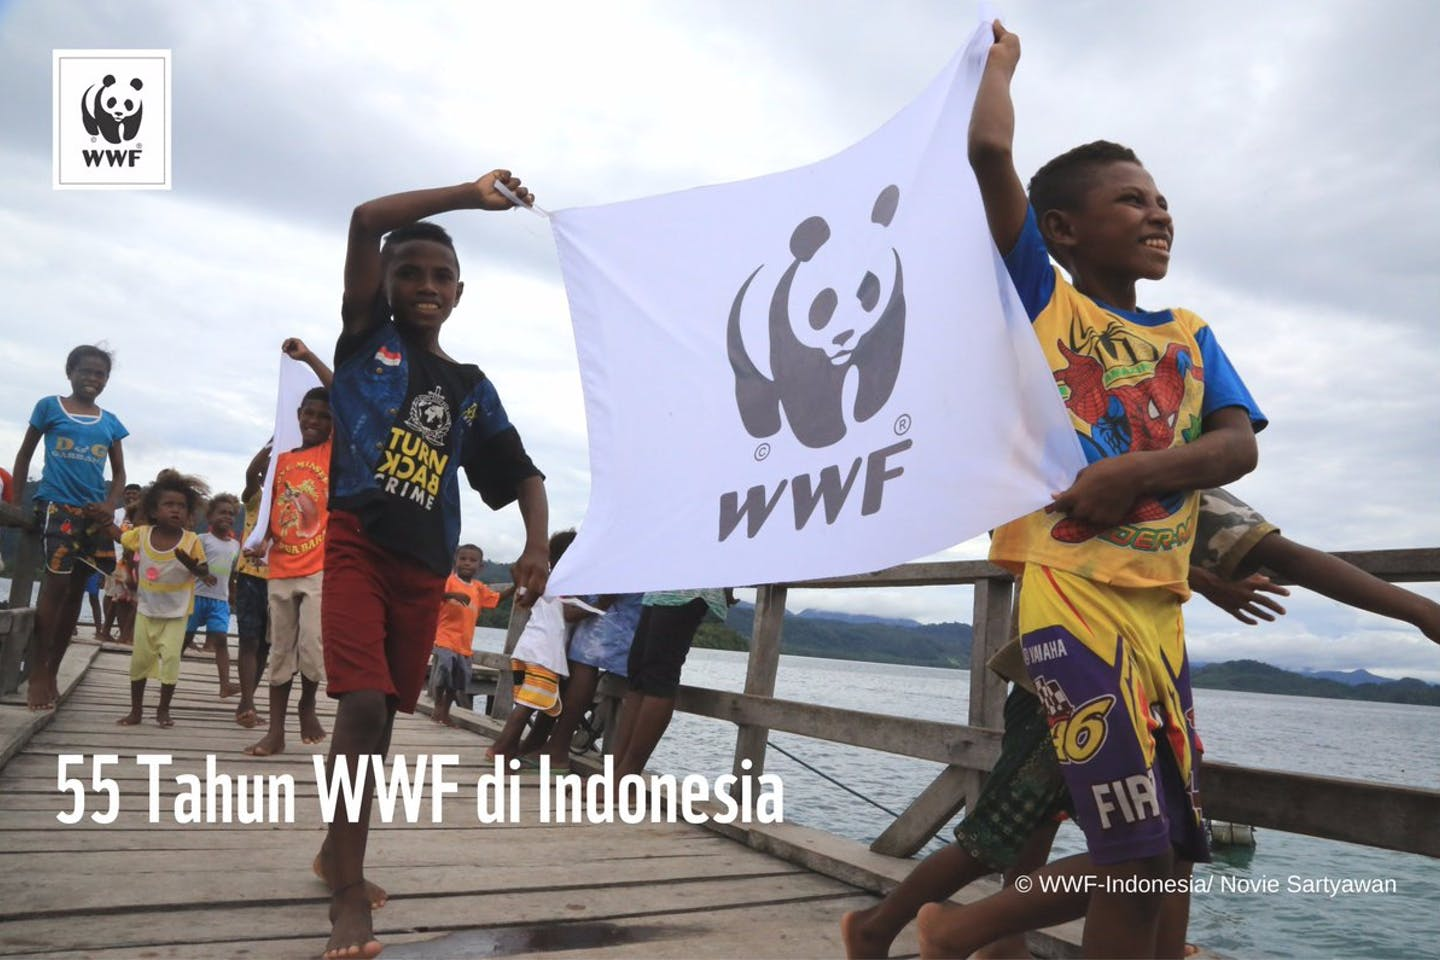 Children hold a WWF banner to celebrate 55 years of operations for the NGO in Indonesia. Image: WWF-Indonesia/Novie Sartyawan